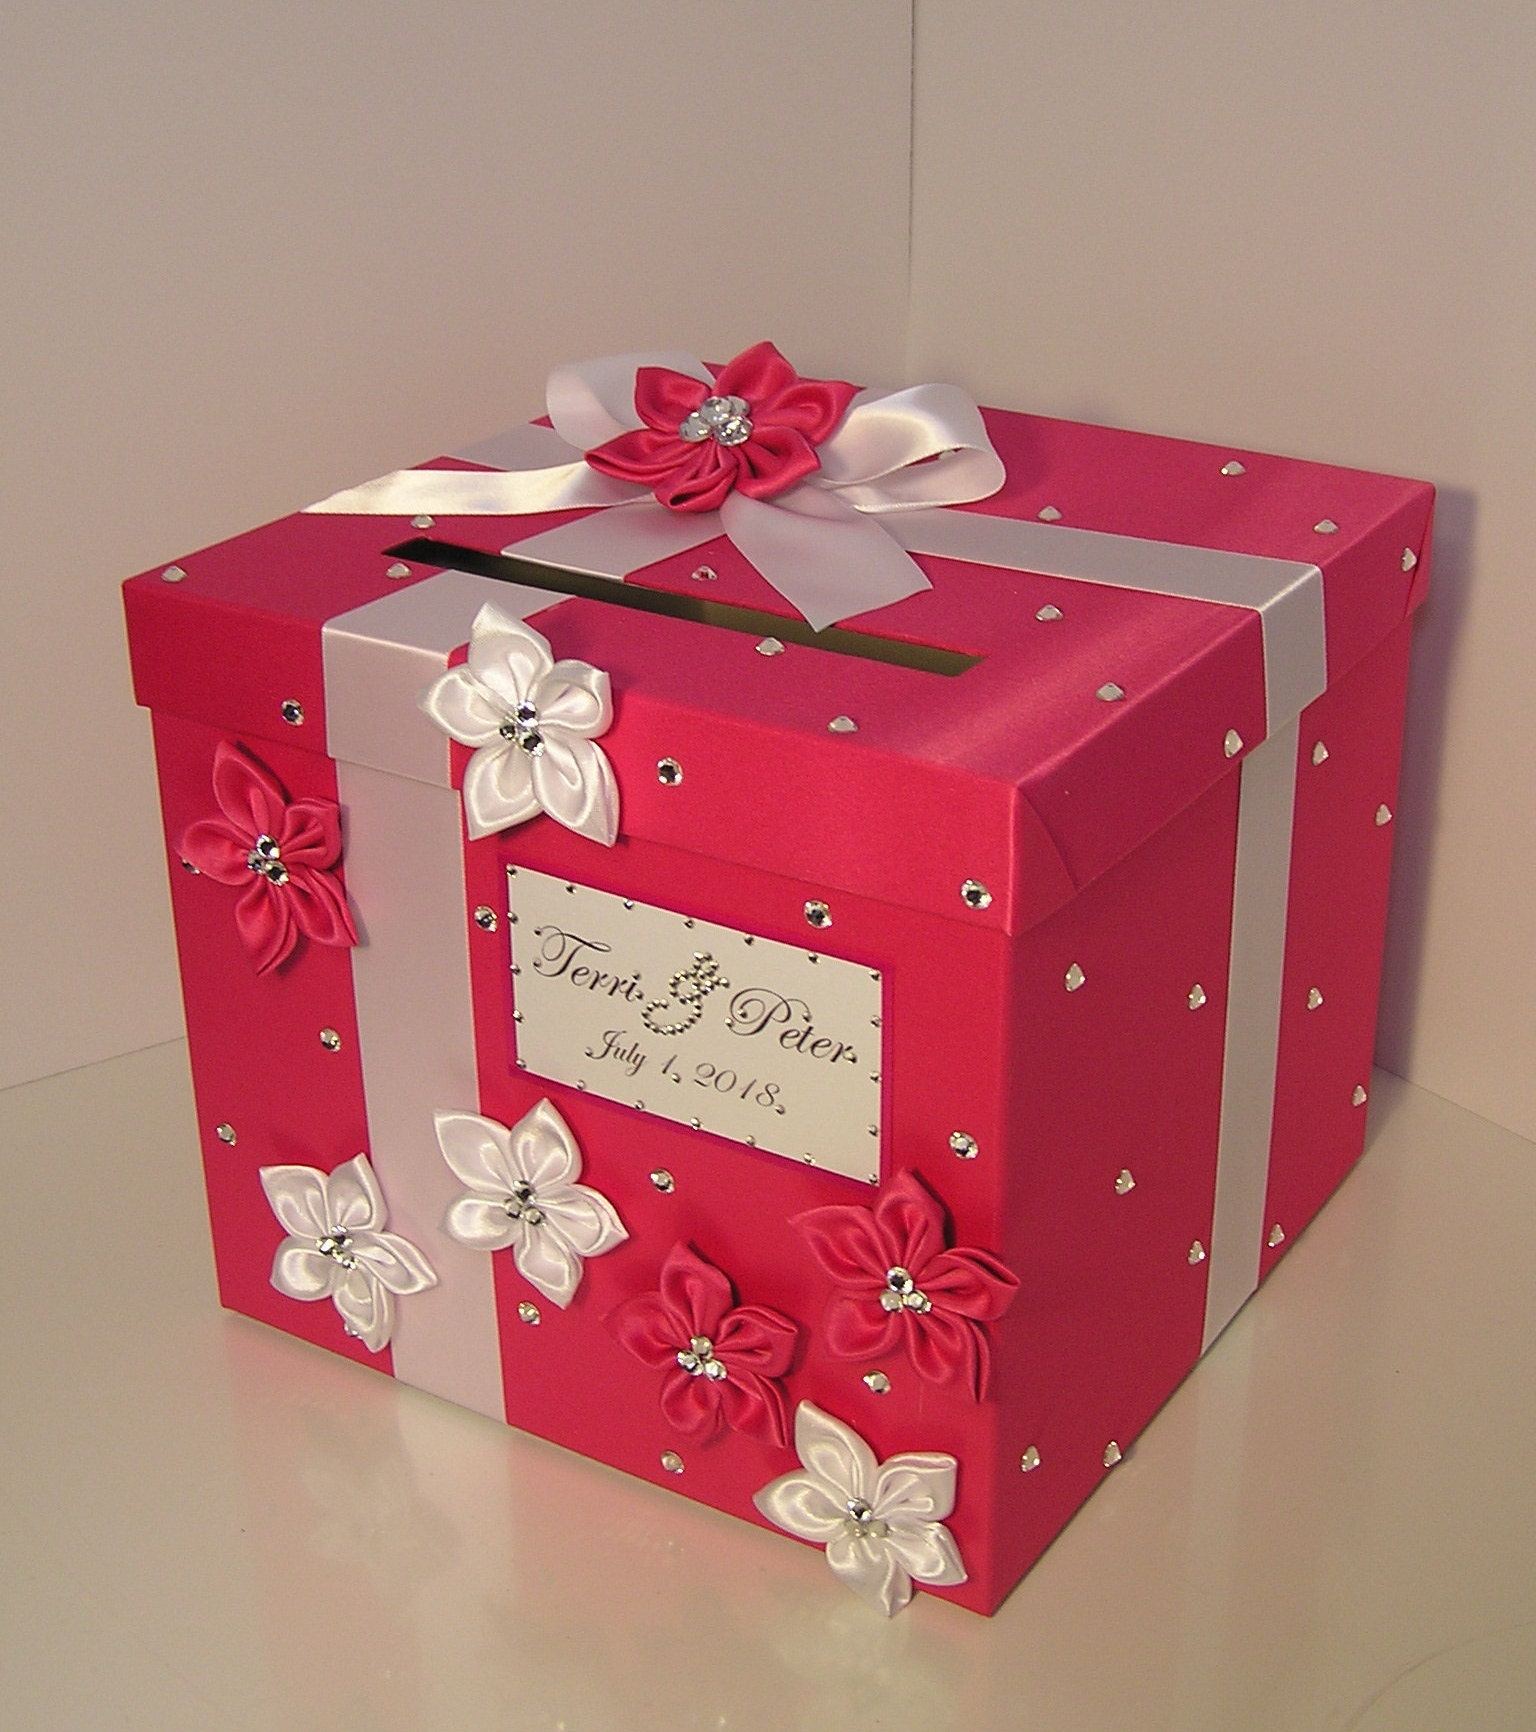 Gift Card Boxes For Weddings: Wedding Card Box Hot Pink And White Gift Card Box Money